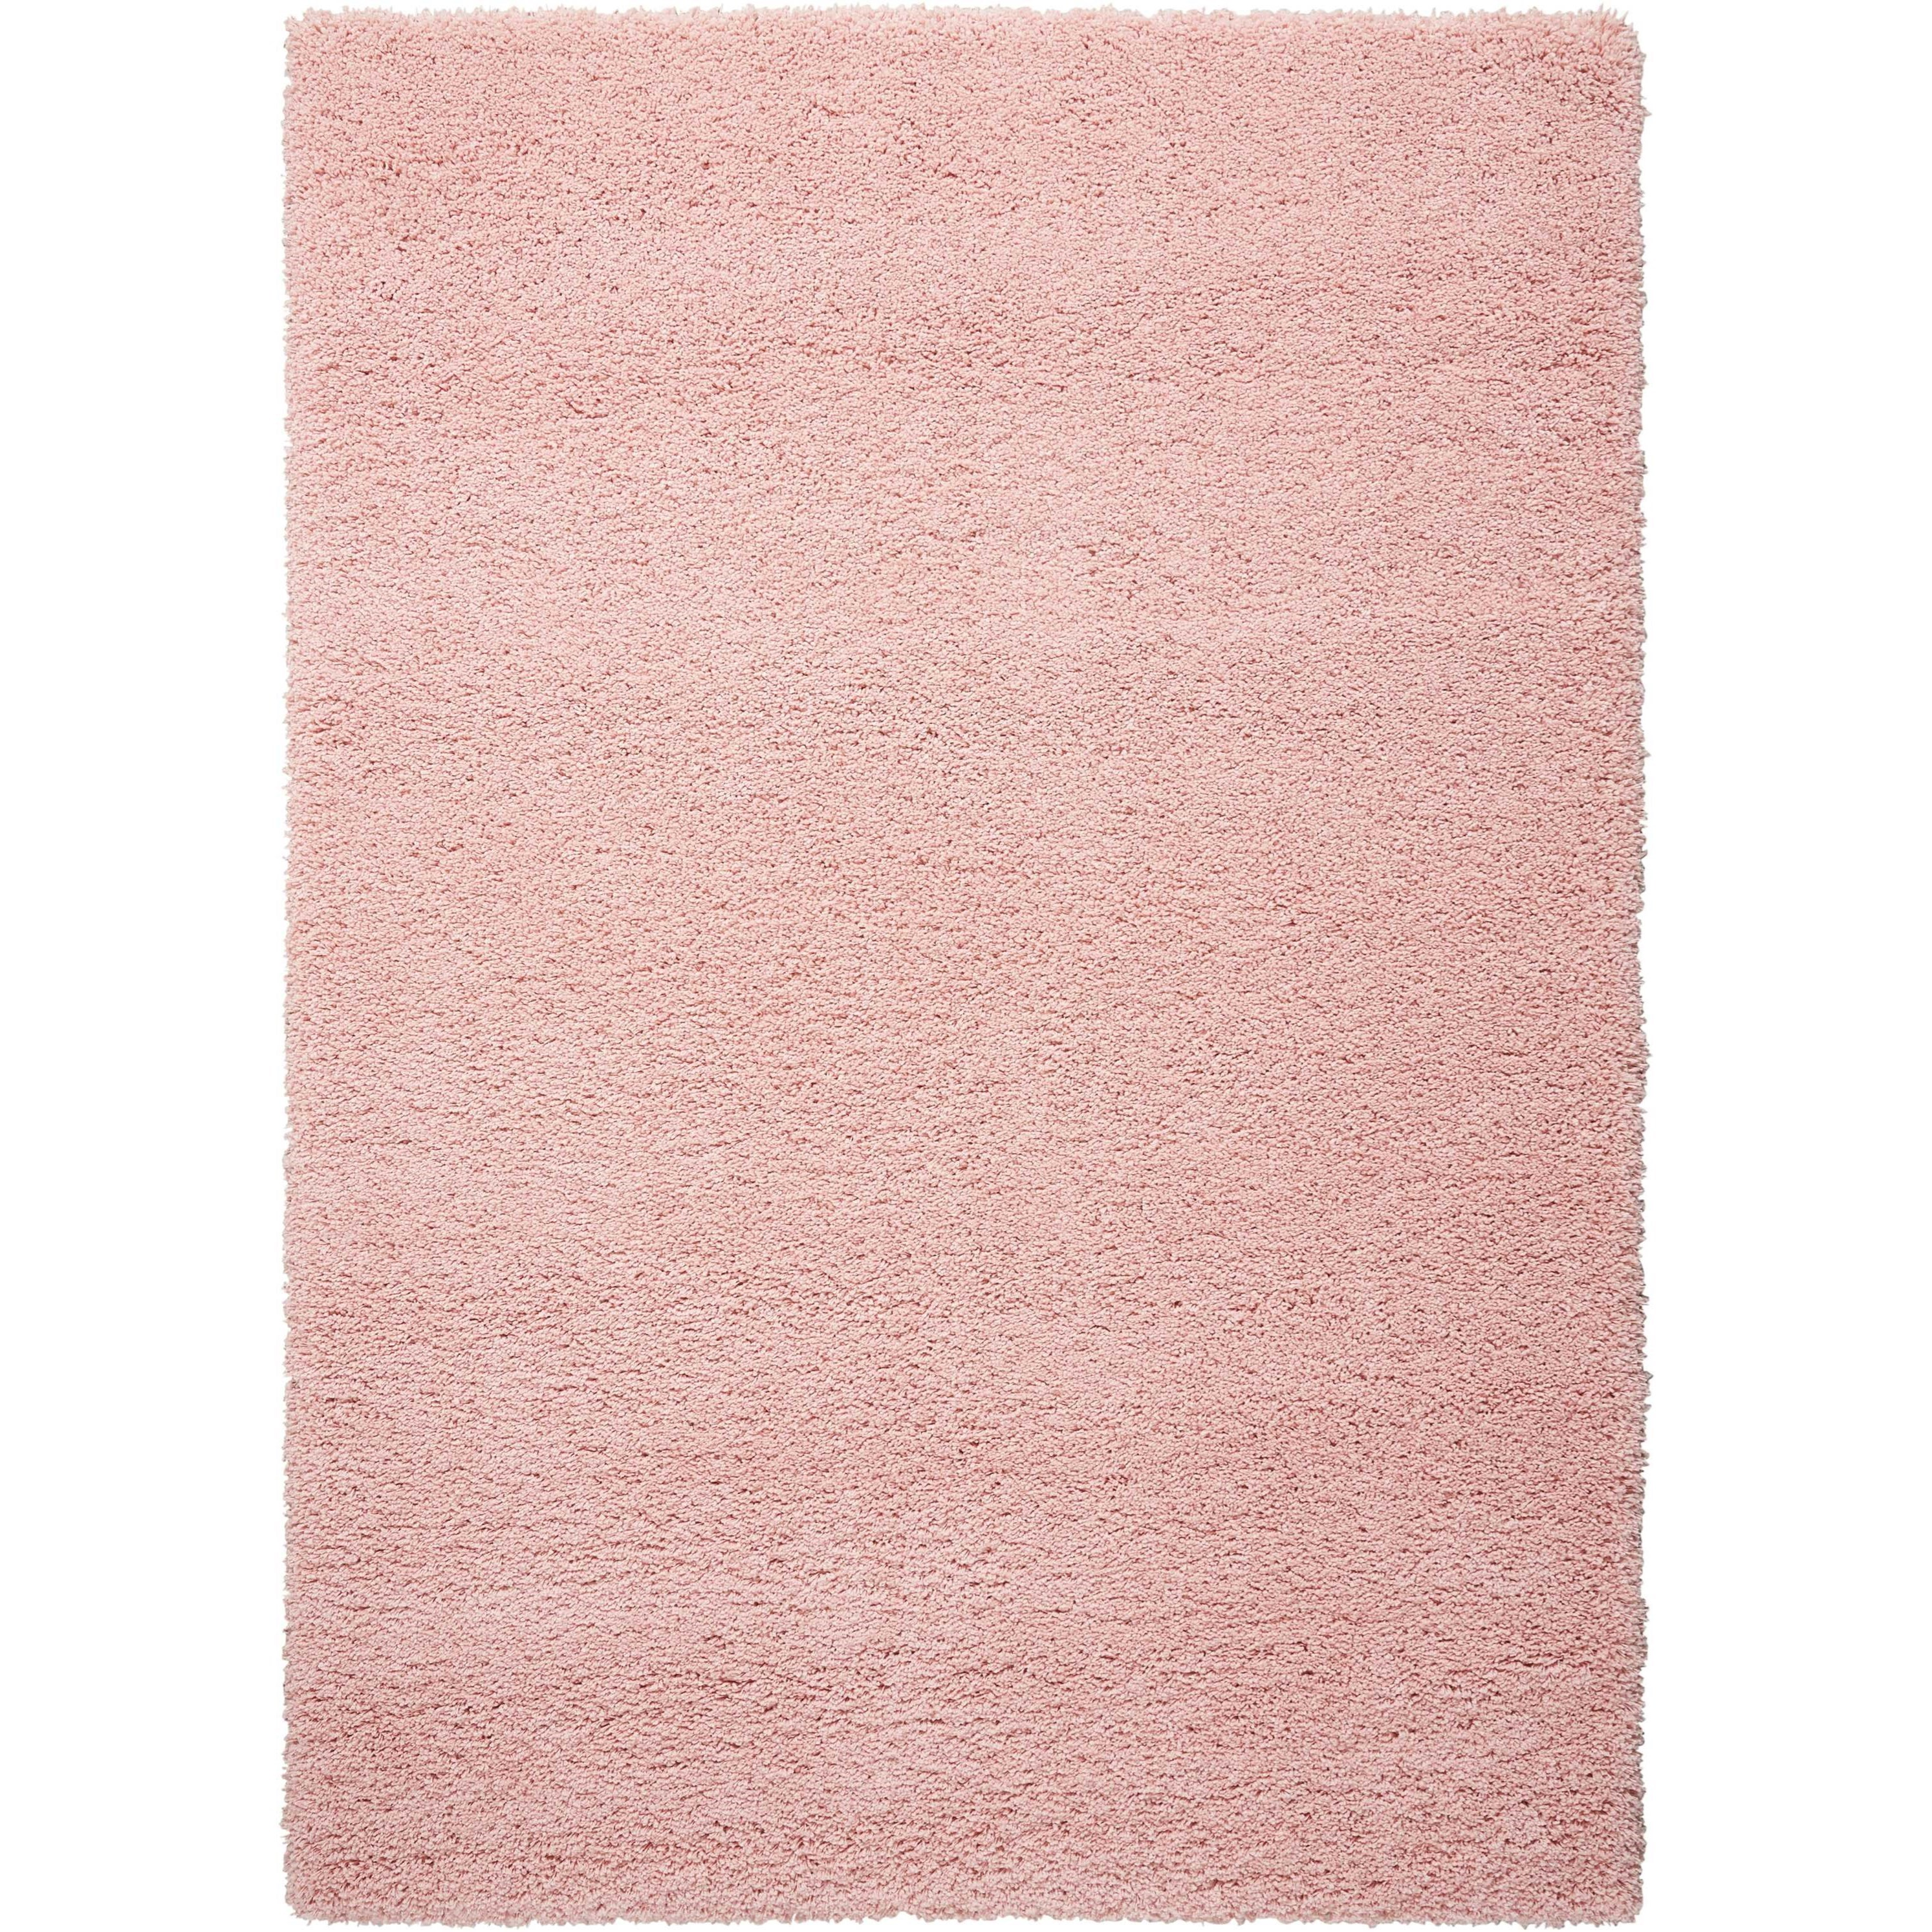 "Amore2 7'10"" X 10'10"" Blush Rug by Nourison at Sprintz Furniture"